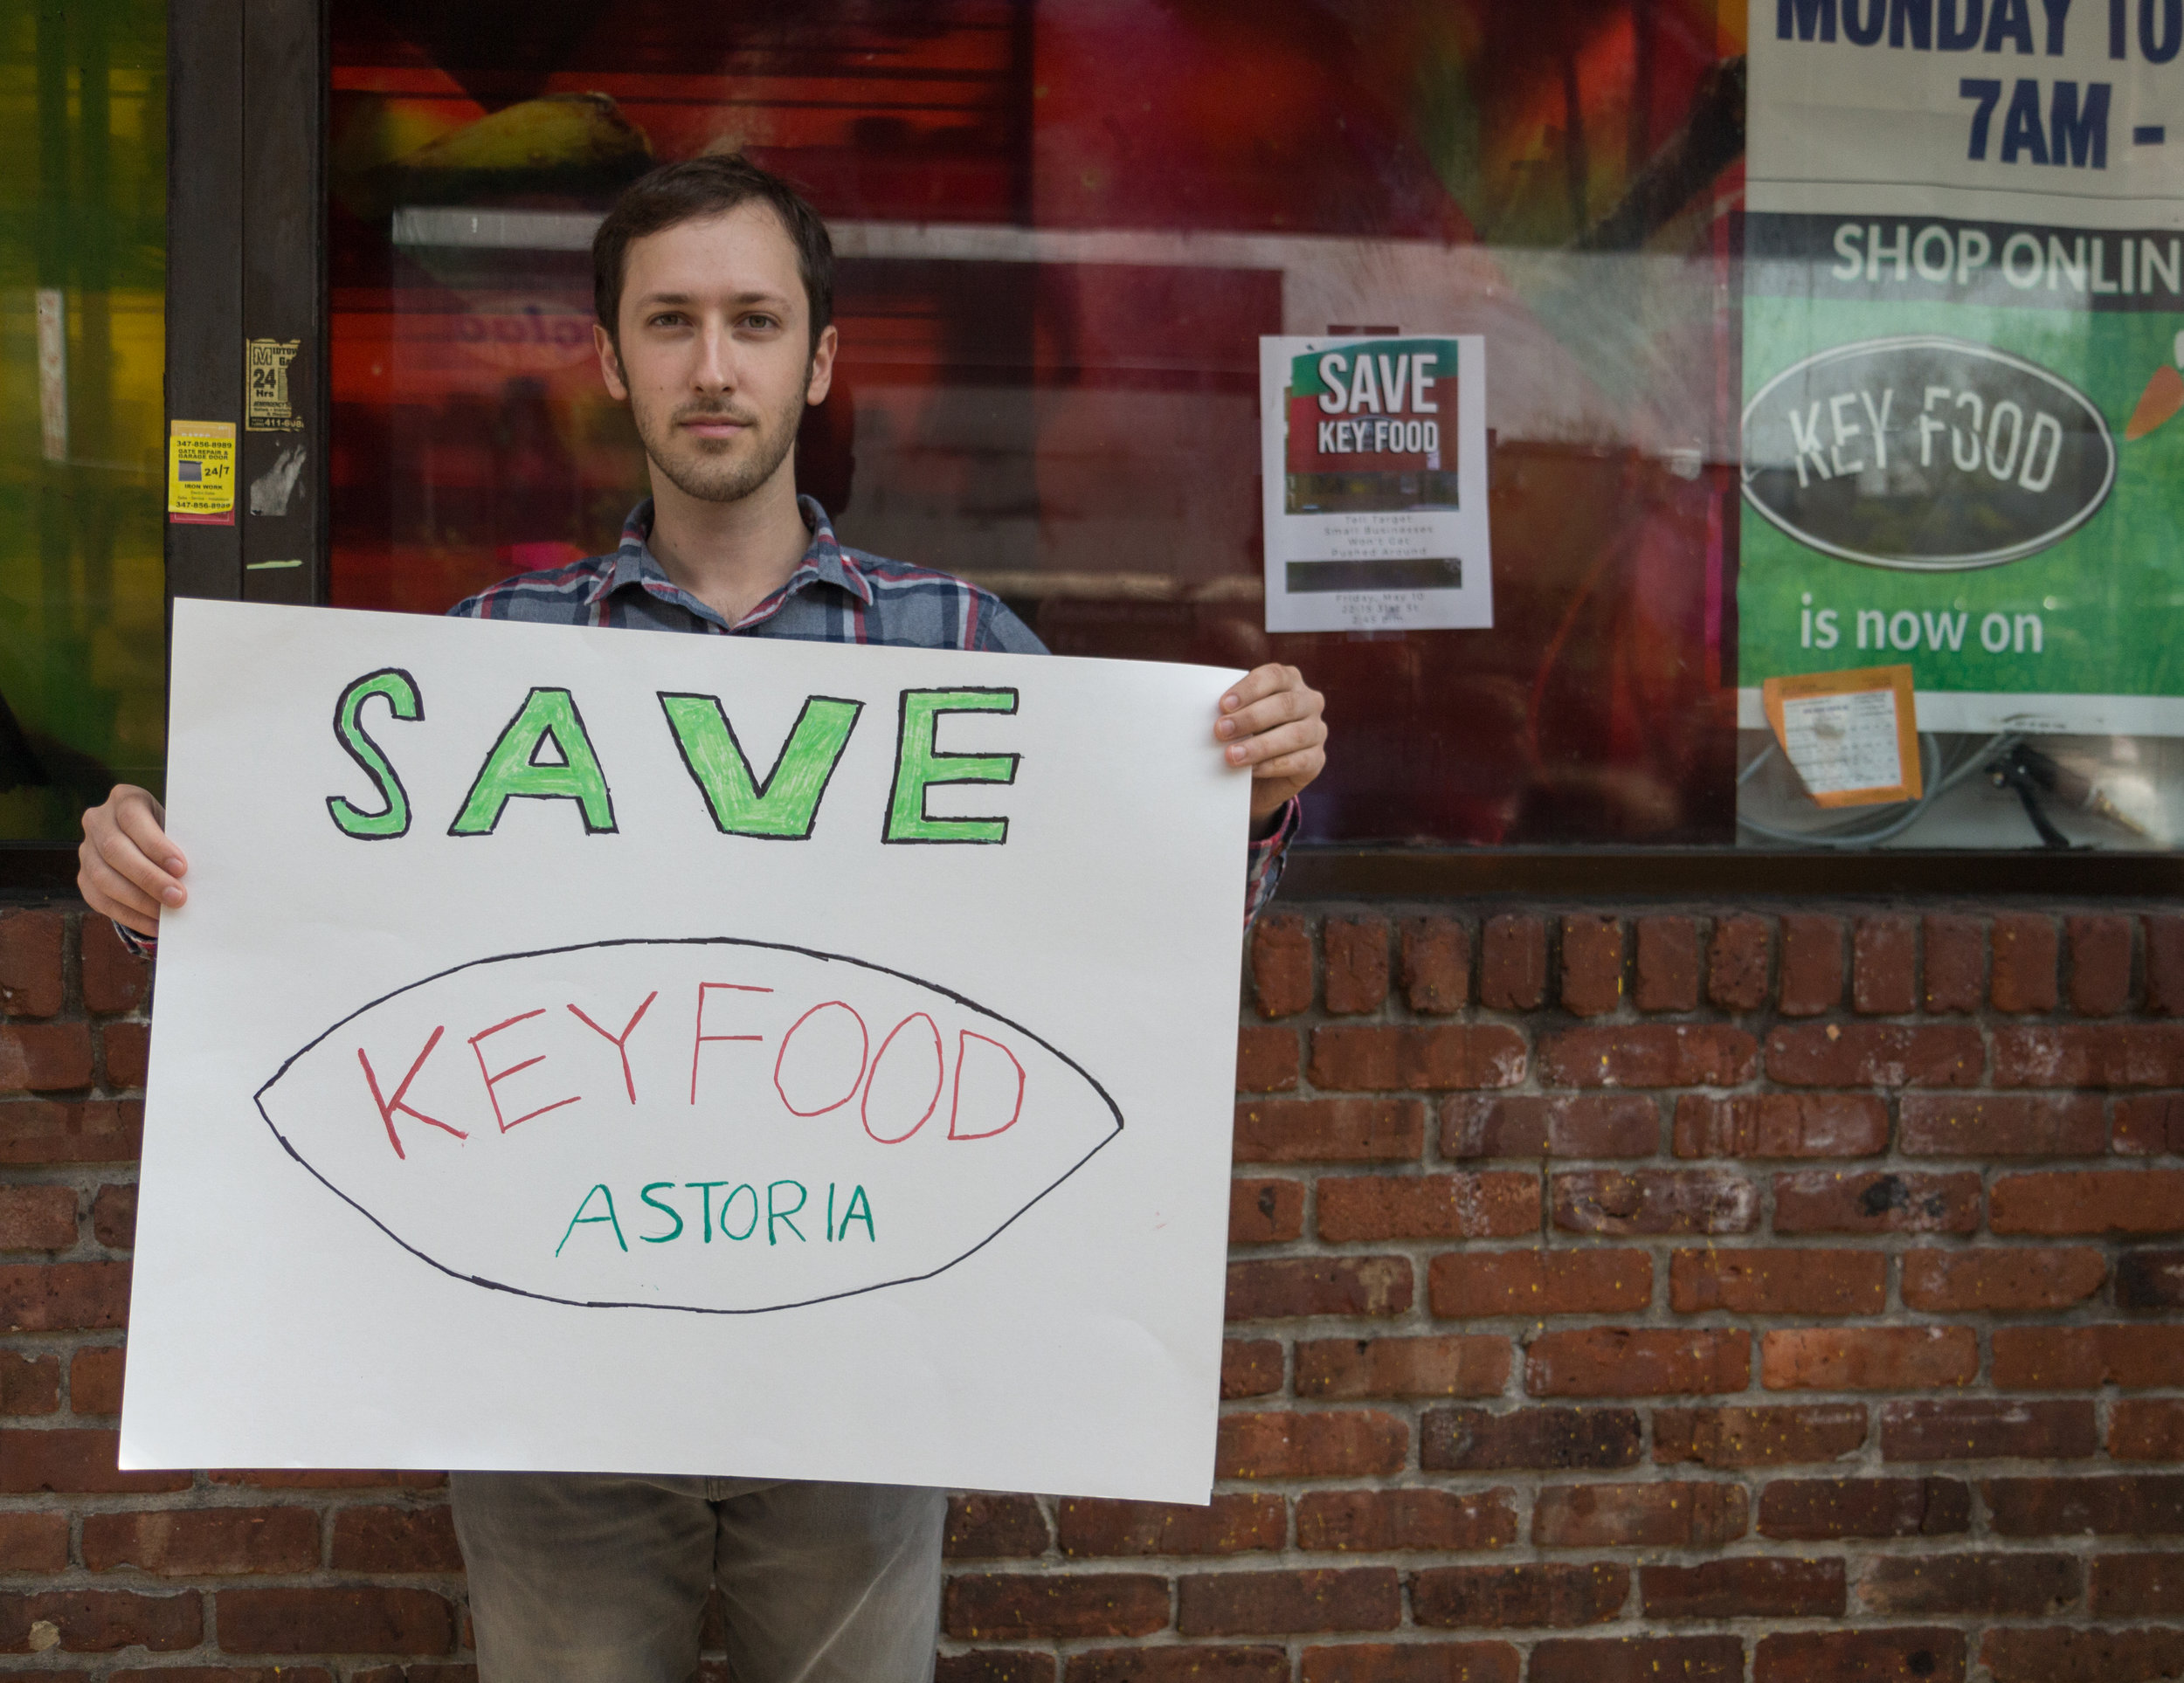 Astoria residents like Jesse Cerrotti say they want to save the 31st Street Key Food, which is threatened by a planned Target. The store owner said he is willing to share the space with Target.  Eagle  photo by Jonathan Sperling.